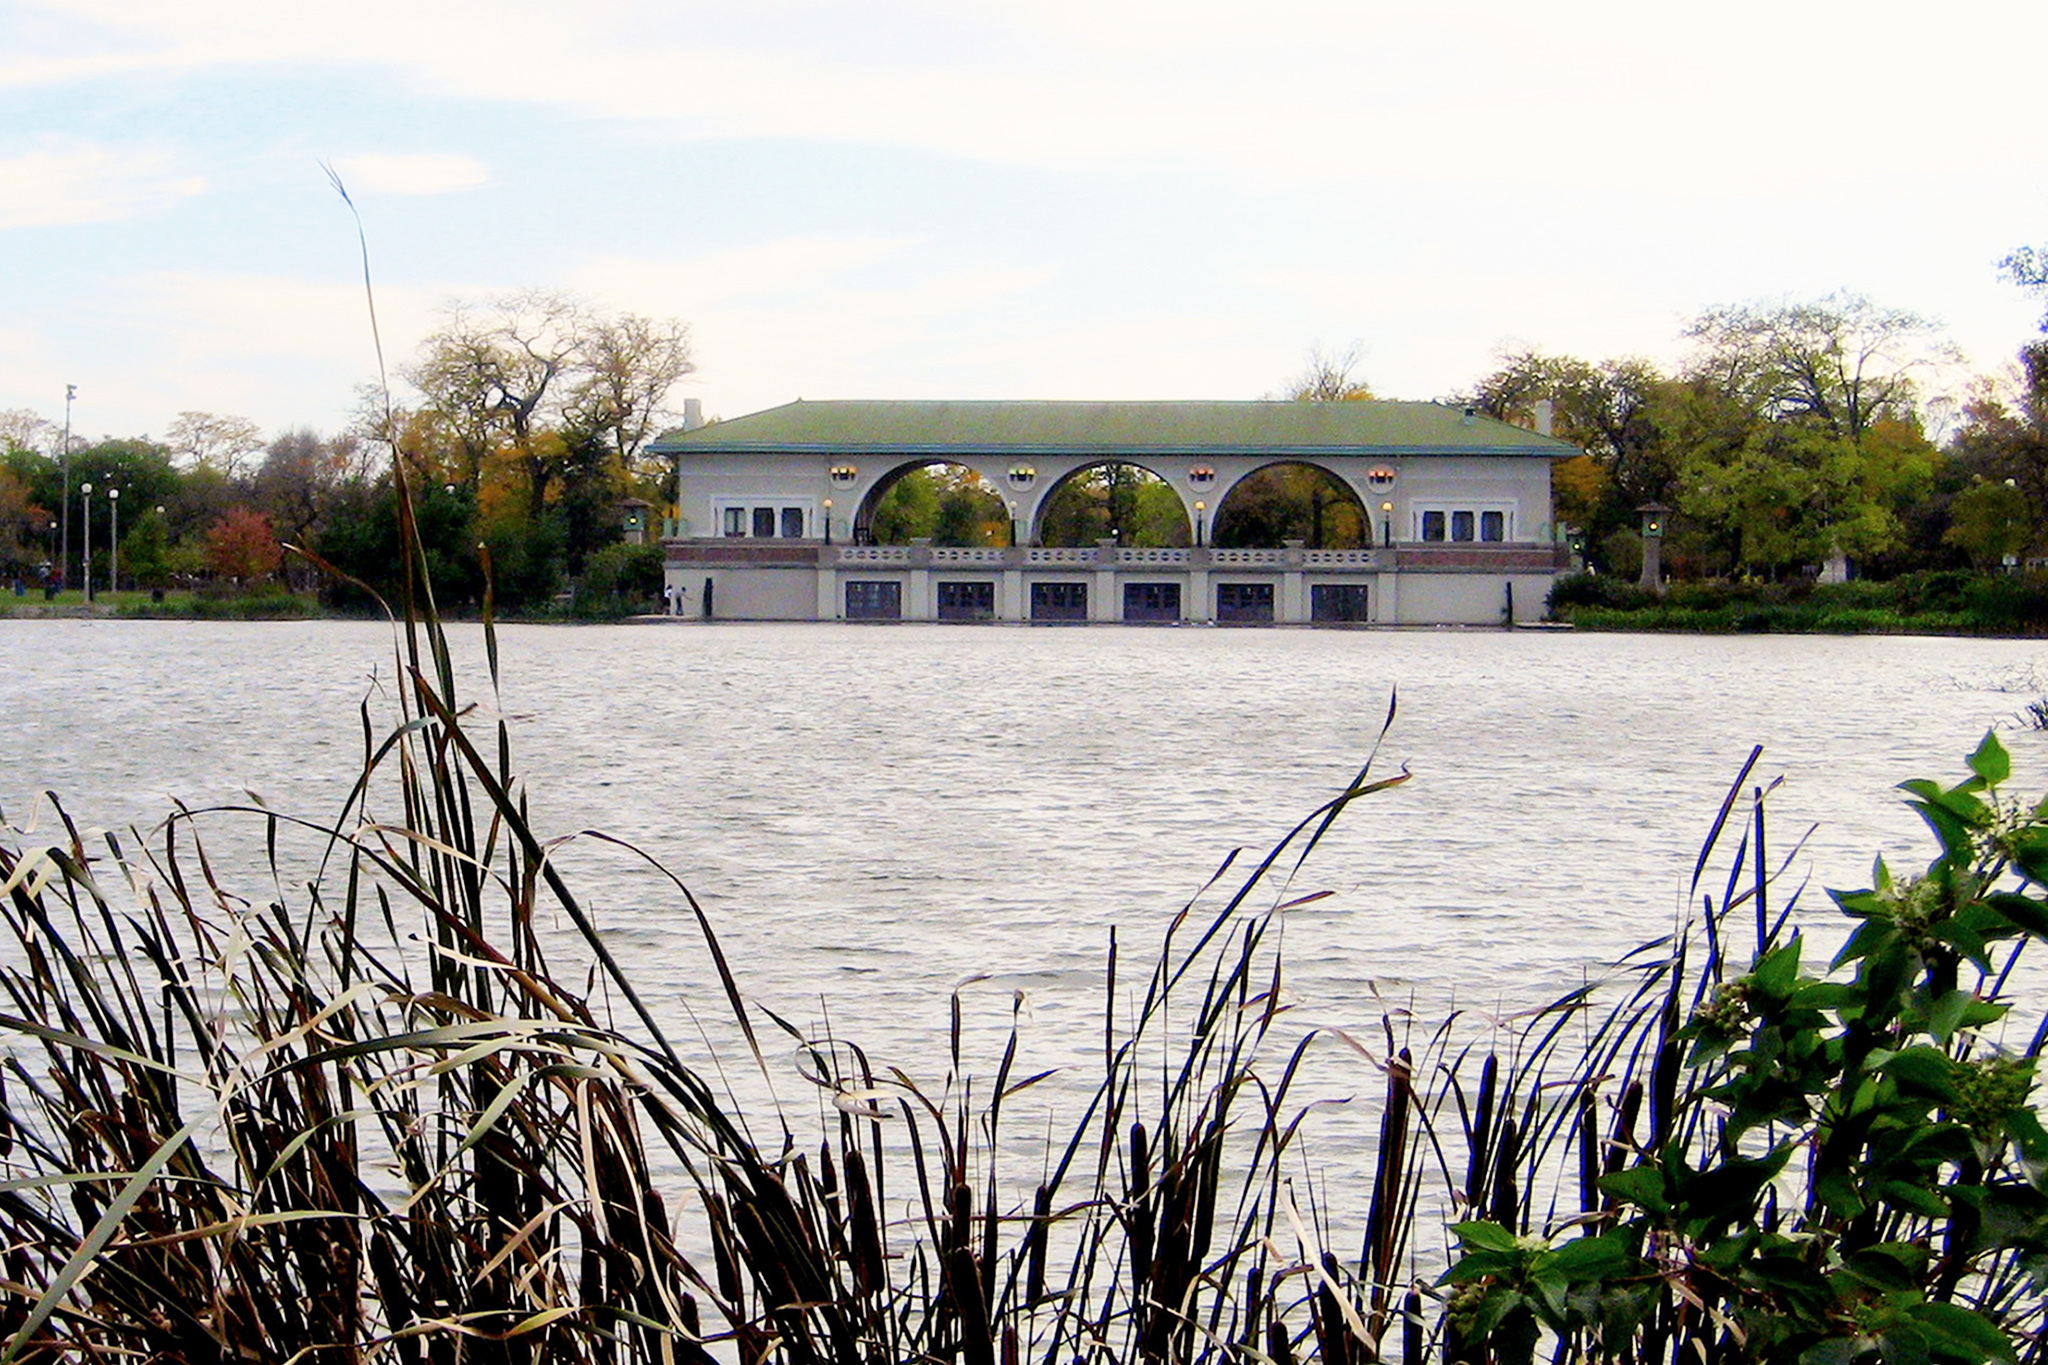 Humboldt Park Boathouse